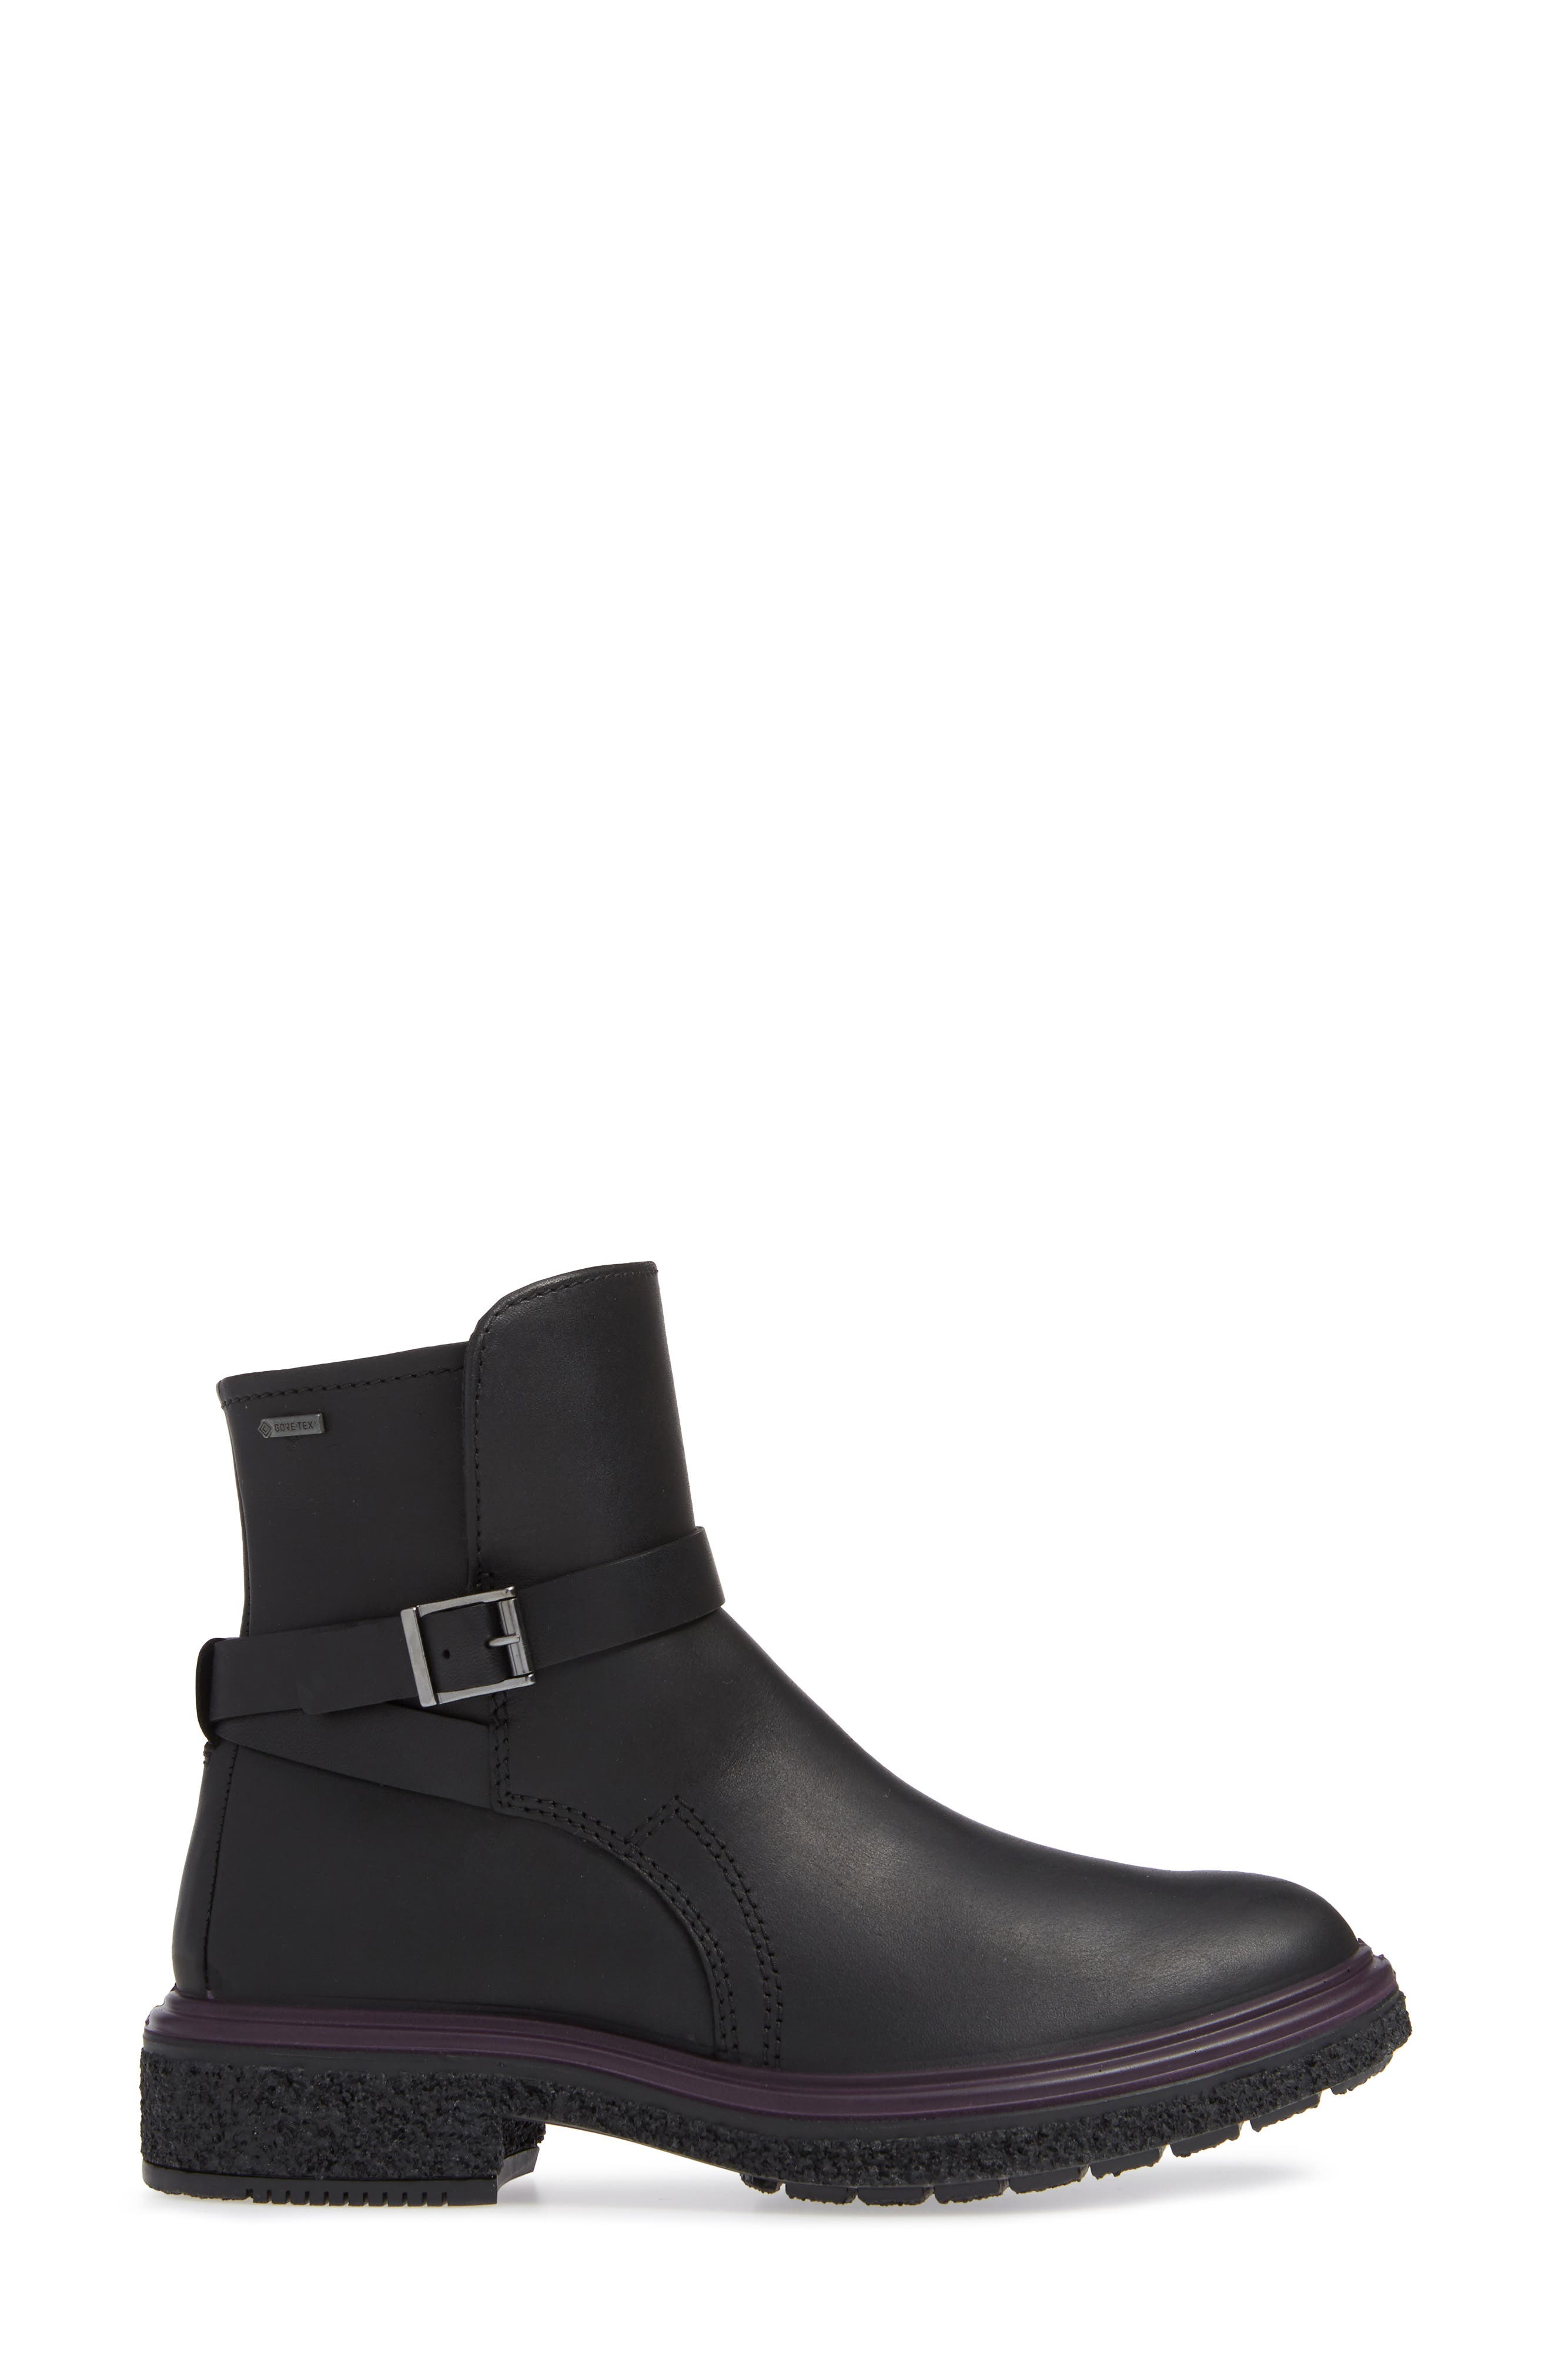 Crepetray GTX Waterproof Bootie,                             Alternate thumbnail 3, color,                             BLACK LEATHER